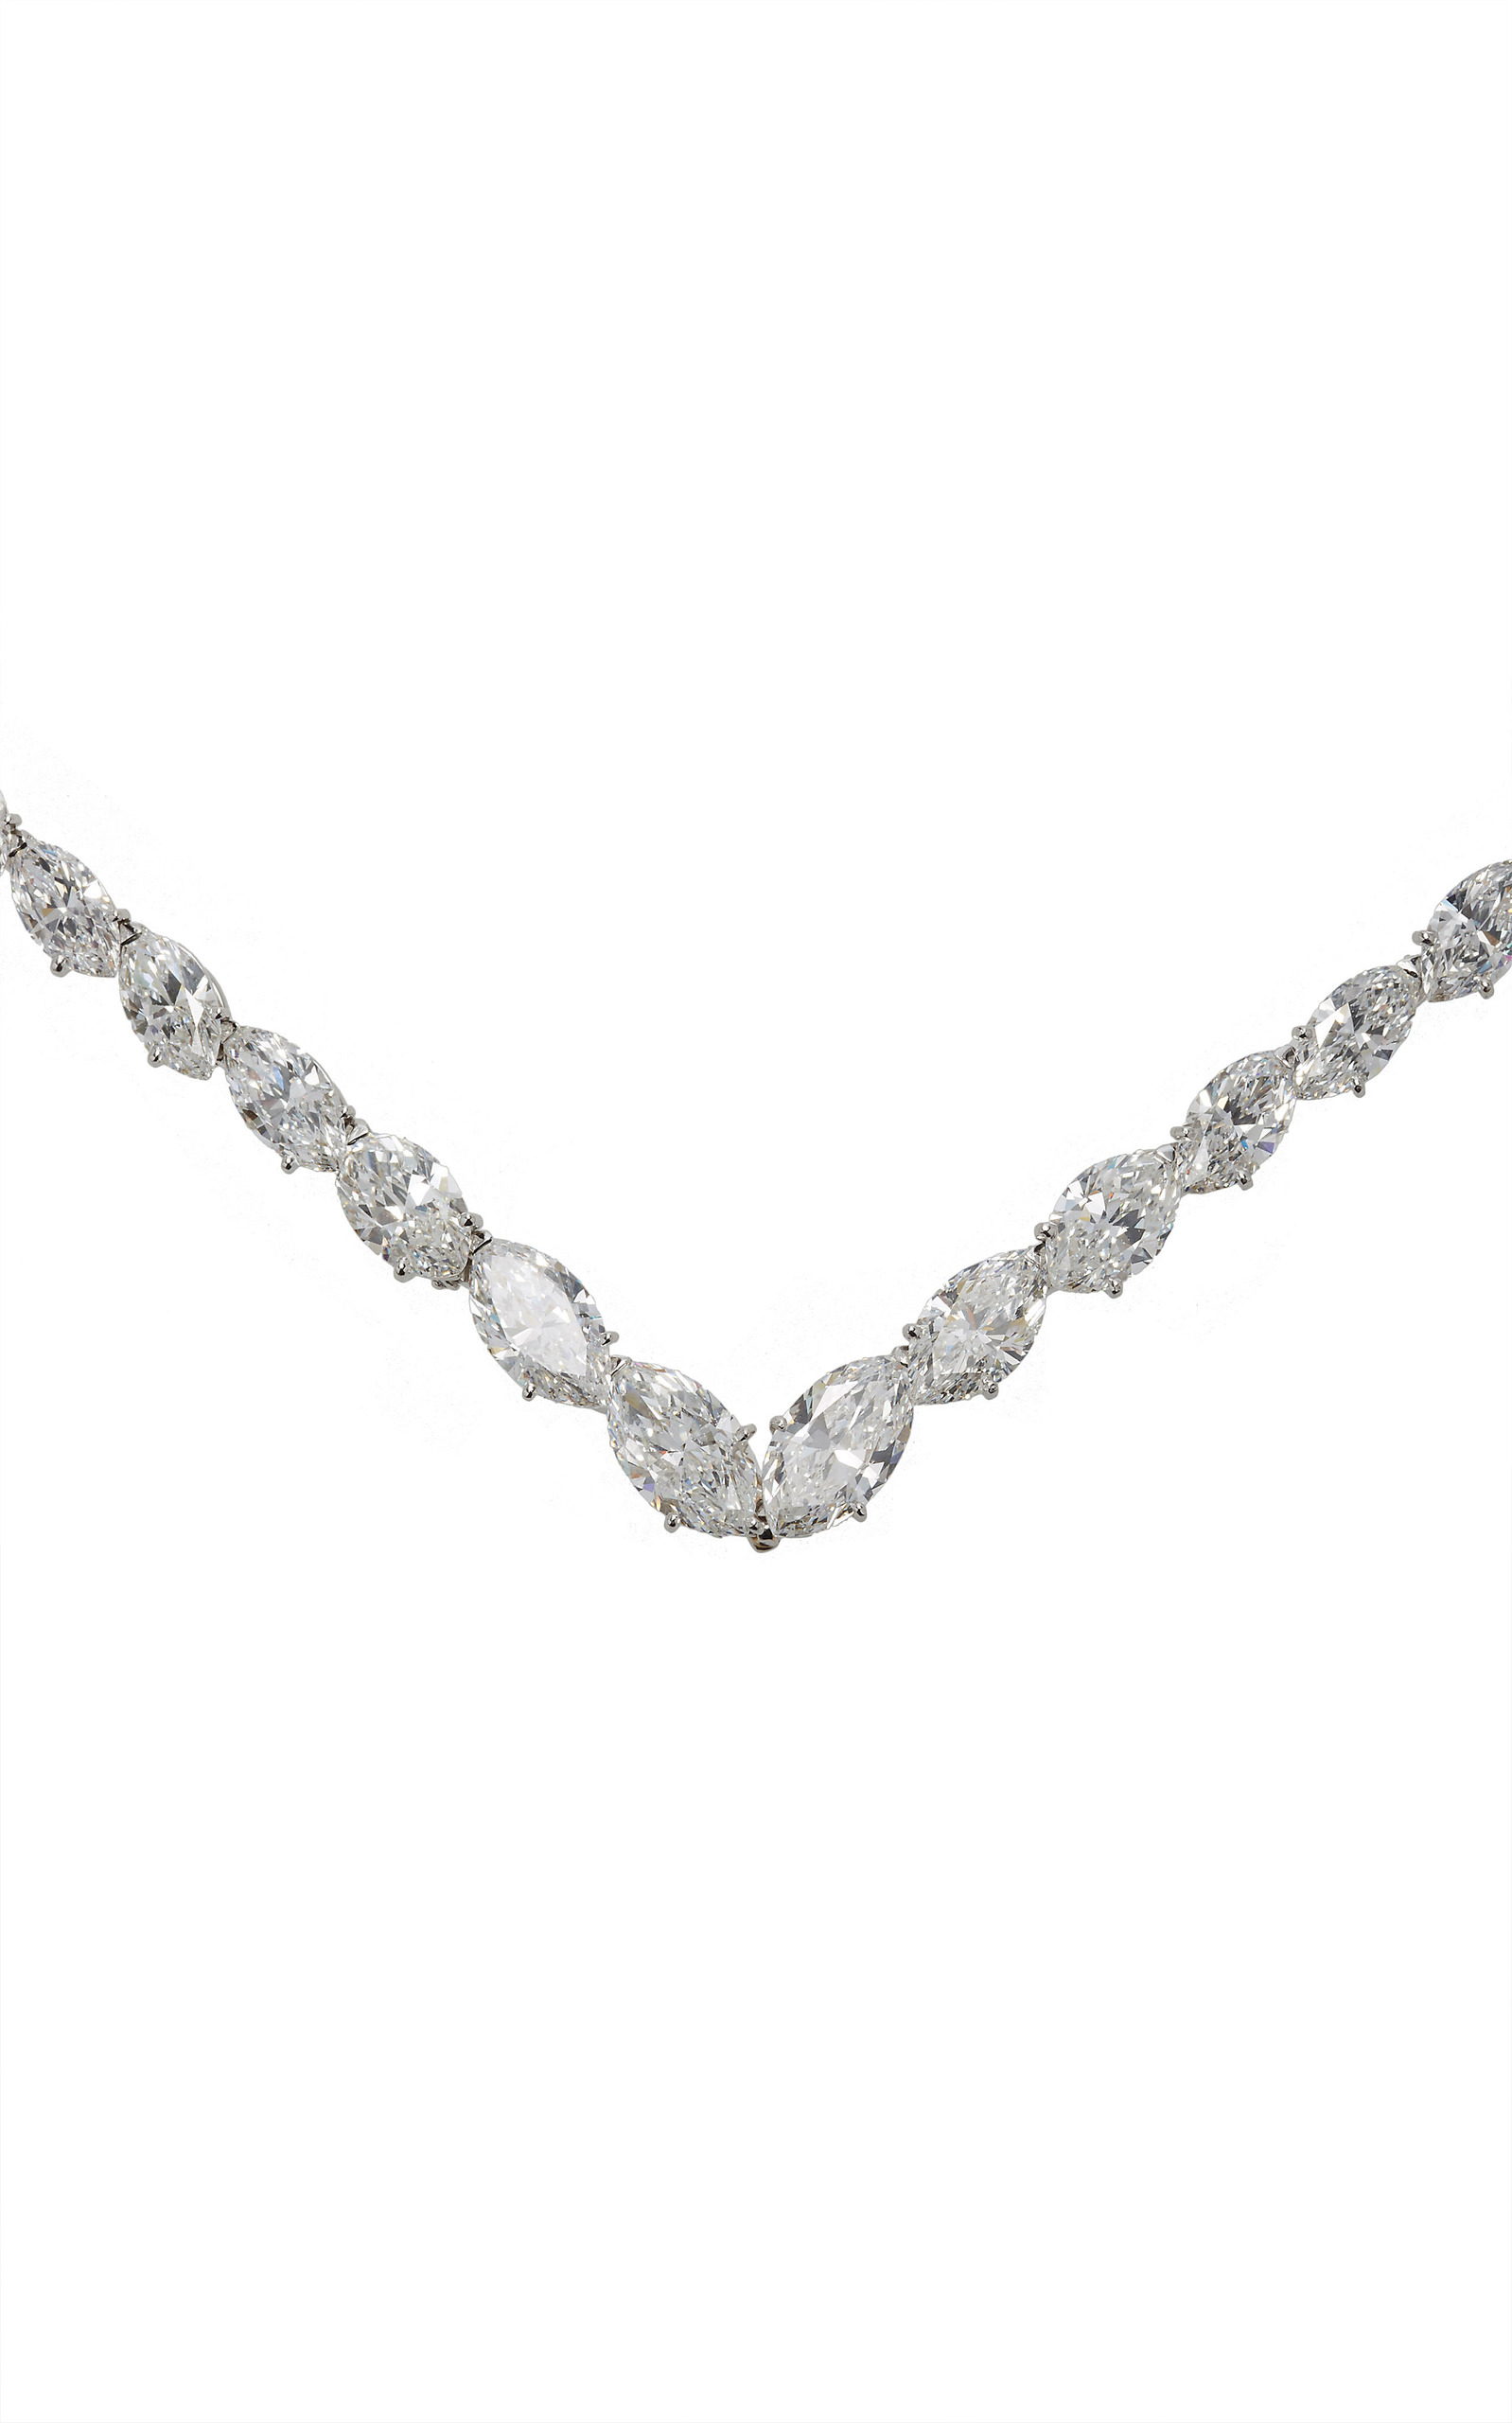 marquise necklace line in style riviera diamond jewelry gold collection white